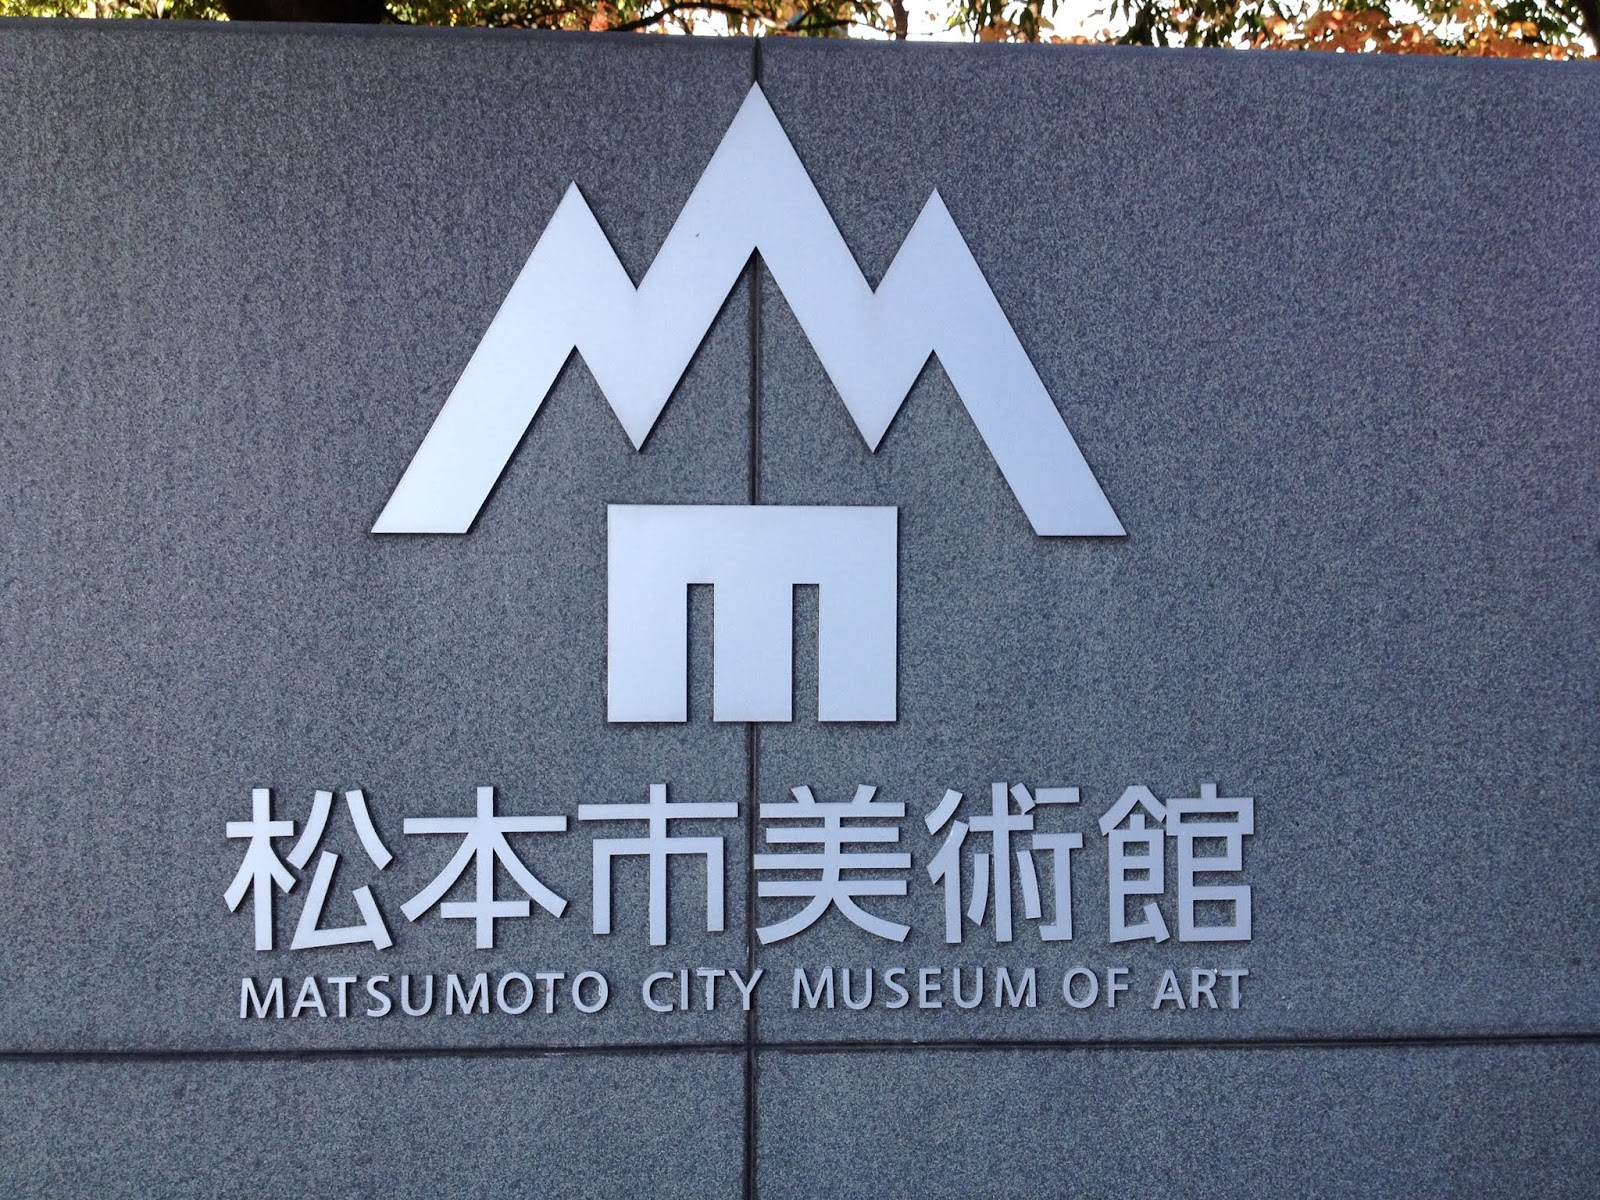 Chaos and Kanji: Modern Art in a Historical Town: Matsumoto City Museum of Art